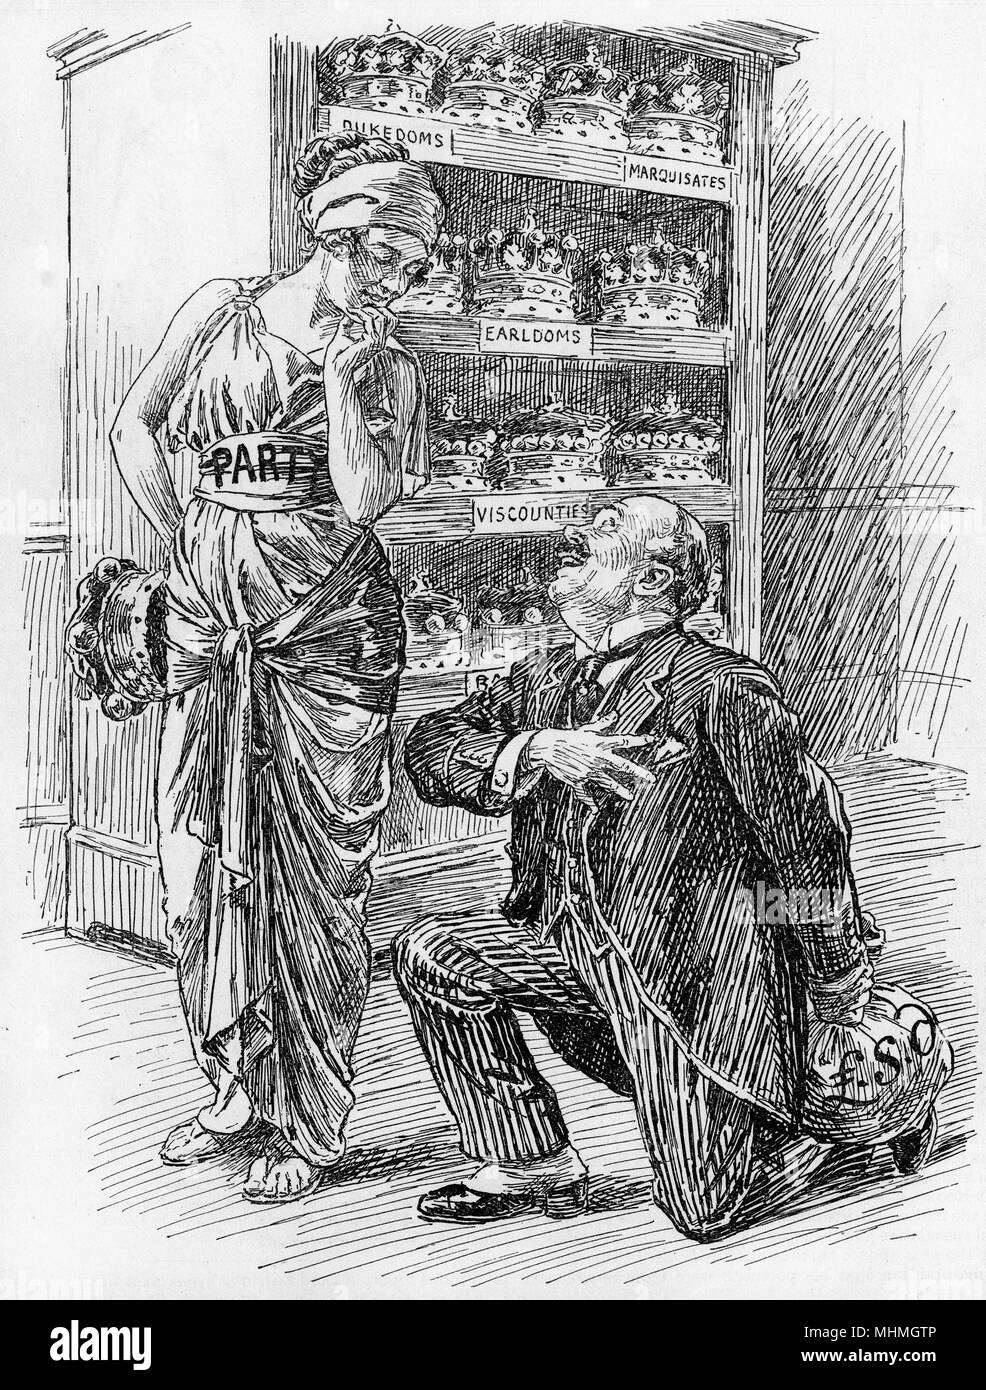 HOUSE OF LORDS cartoon regarding the sale of honours       Date: 1922 Stock Photo